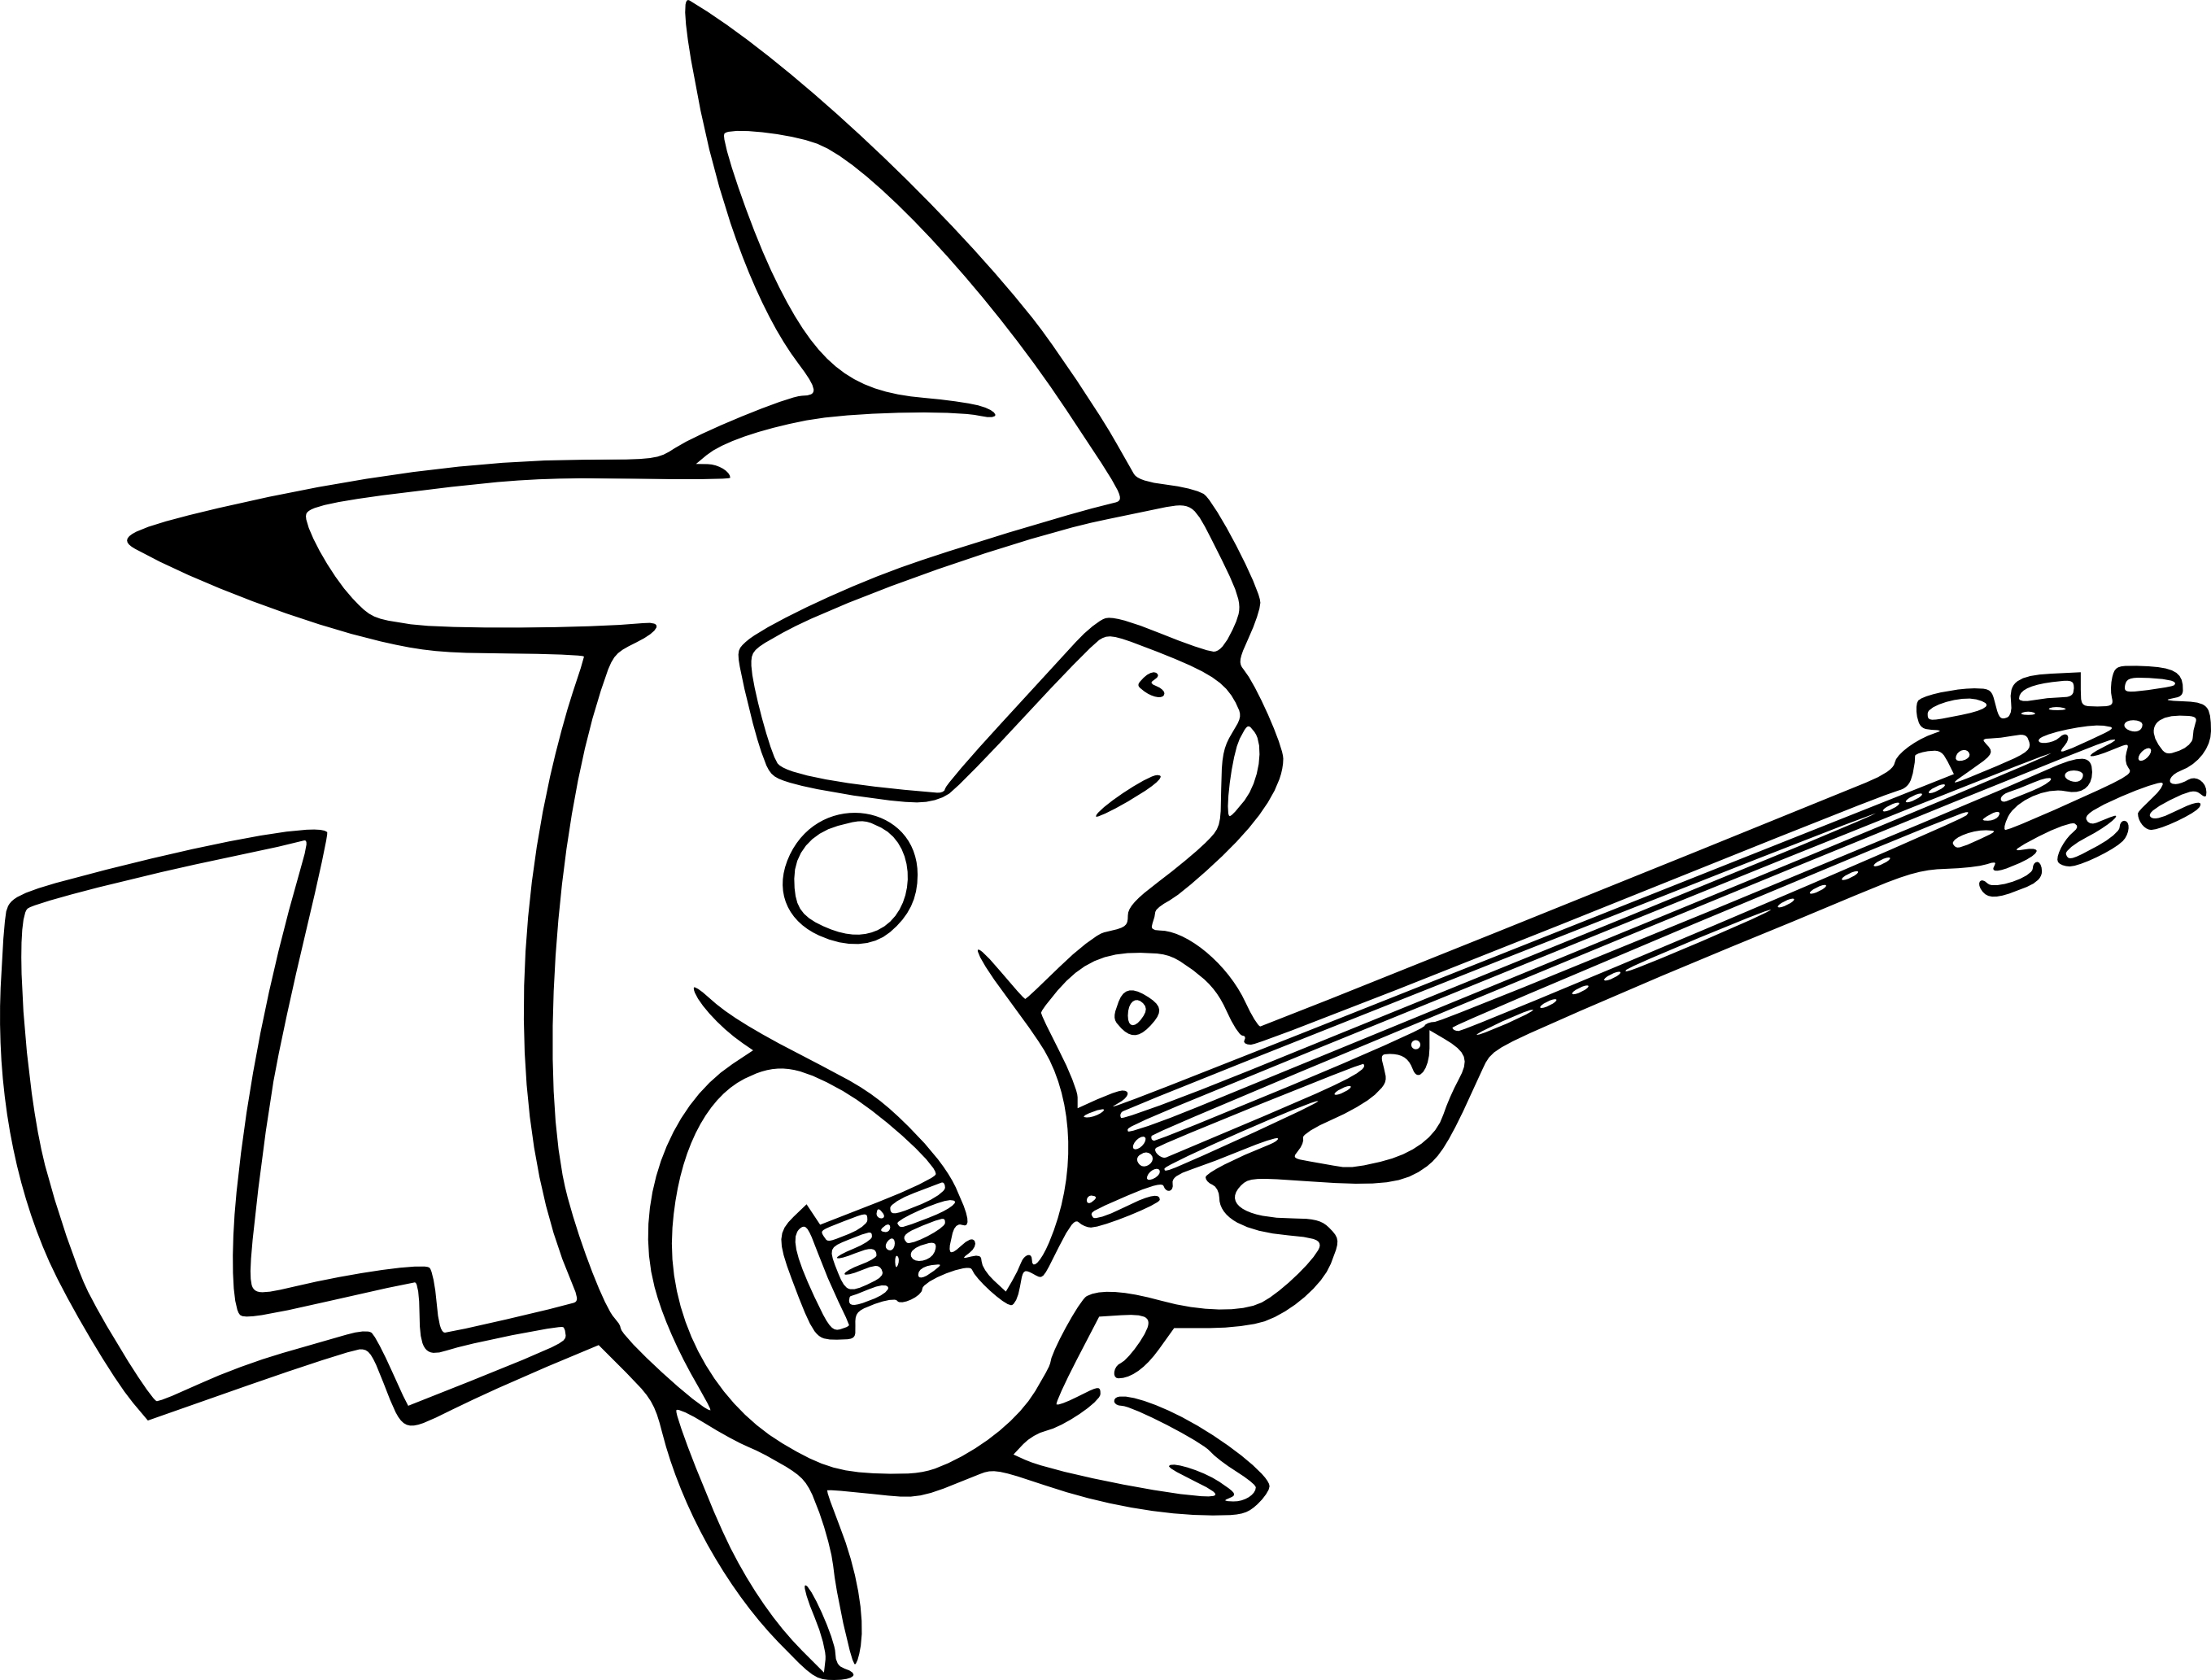 Coloriage Pikachu guitare